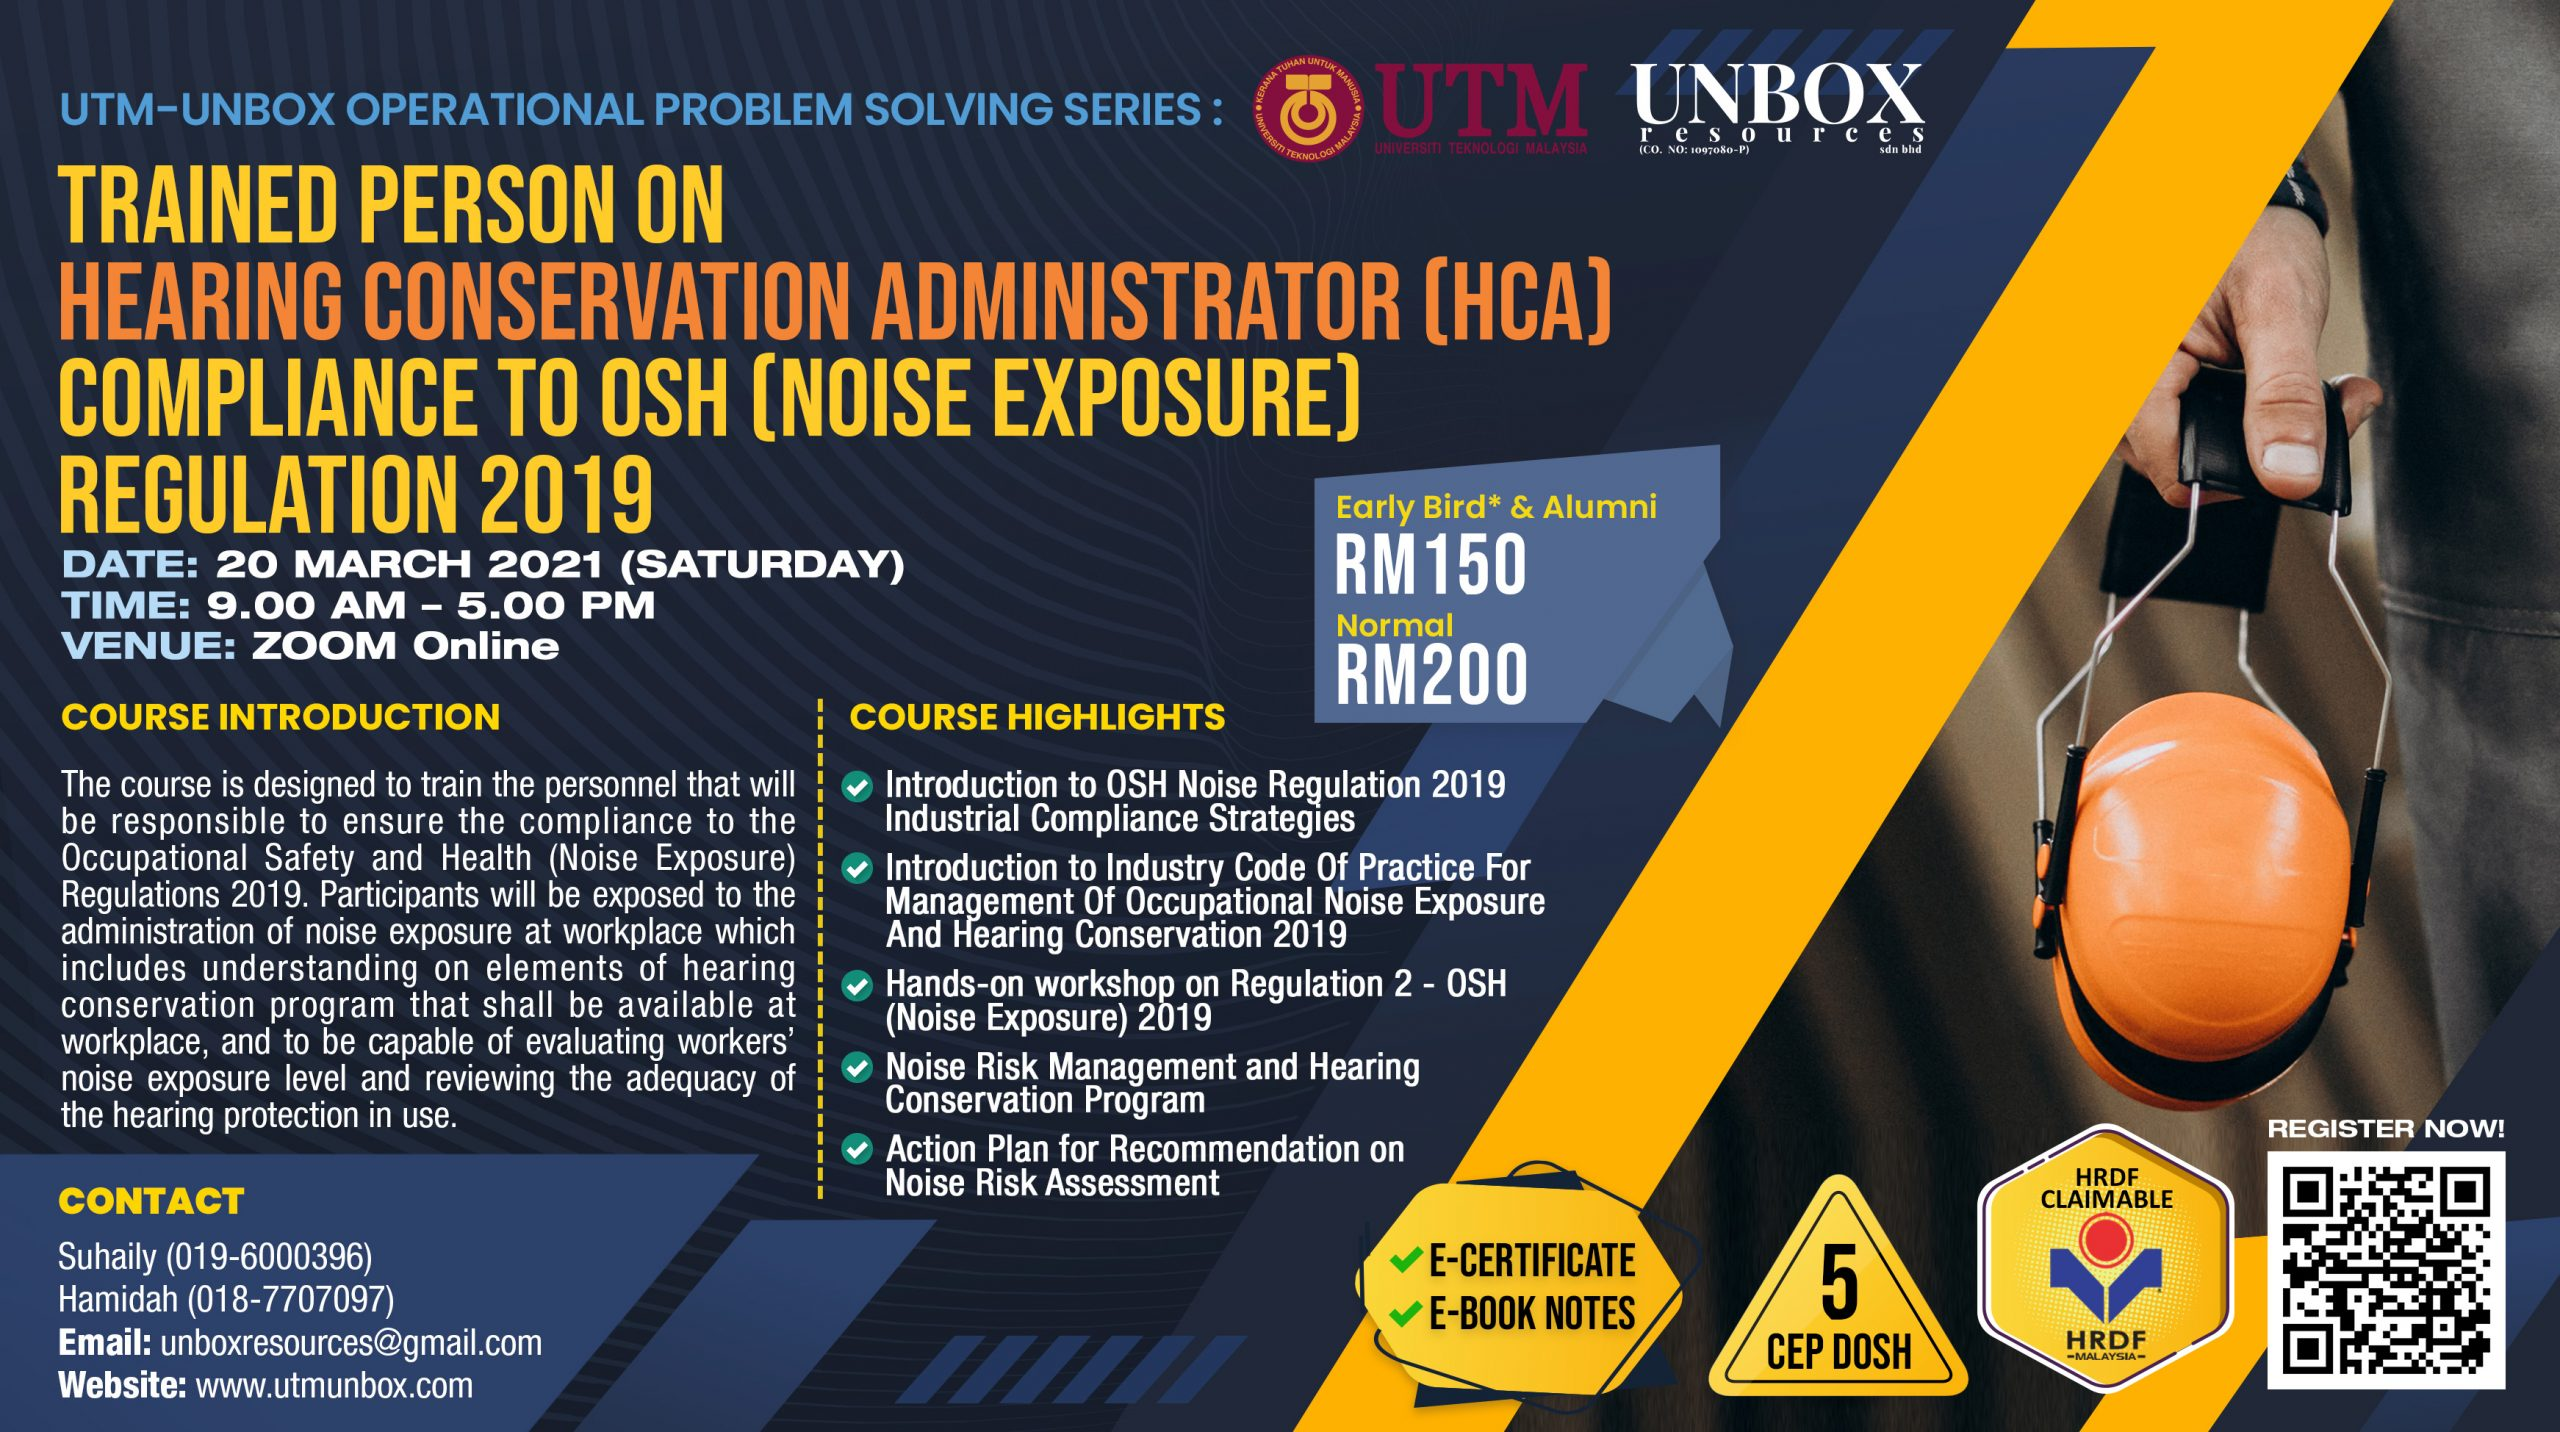 UPCOMING ONLINE CEP COURSE: TRAINED PERSON ON HEARING CONSERVATION ADMINISTRATOR COMPLIANCE TO OCCUPATIONAL SAFETY & HEALTH (NOISE EXPOSURE) REGULATION 2019 (20 MARCH 2021, ZOOM ONLINE)